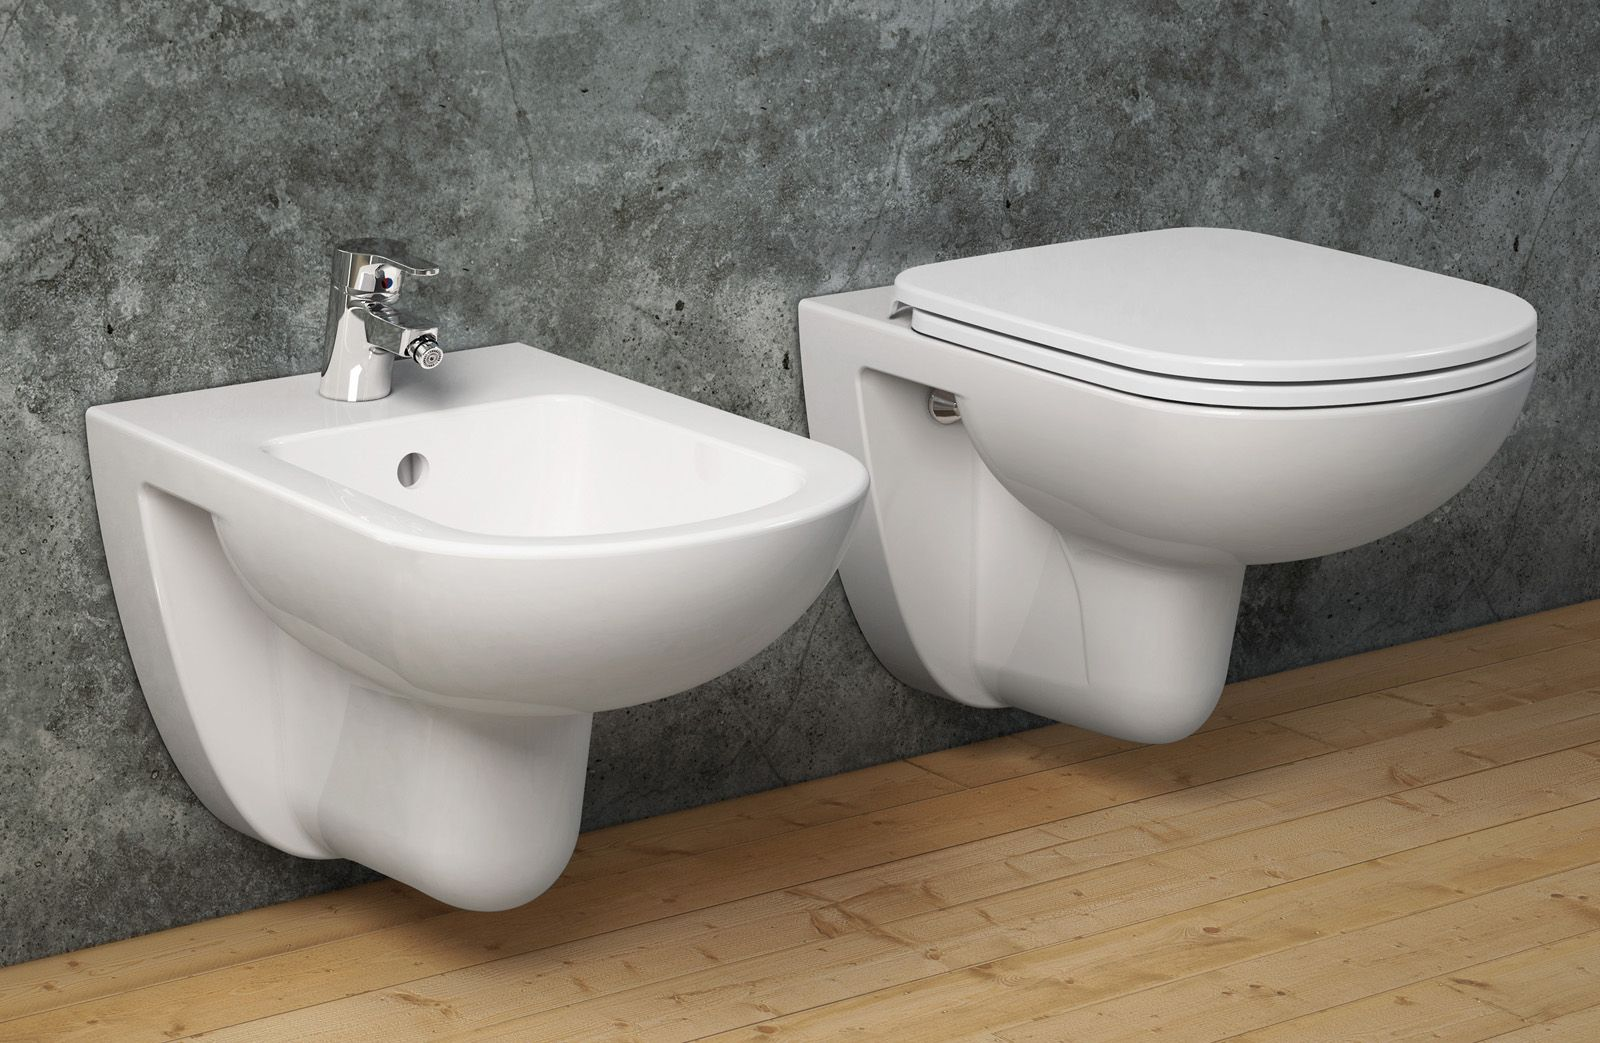 Sanitari Ceramica Per Water E Bidet Di Casa Toilet Bathroom Sink